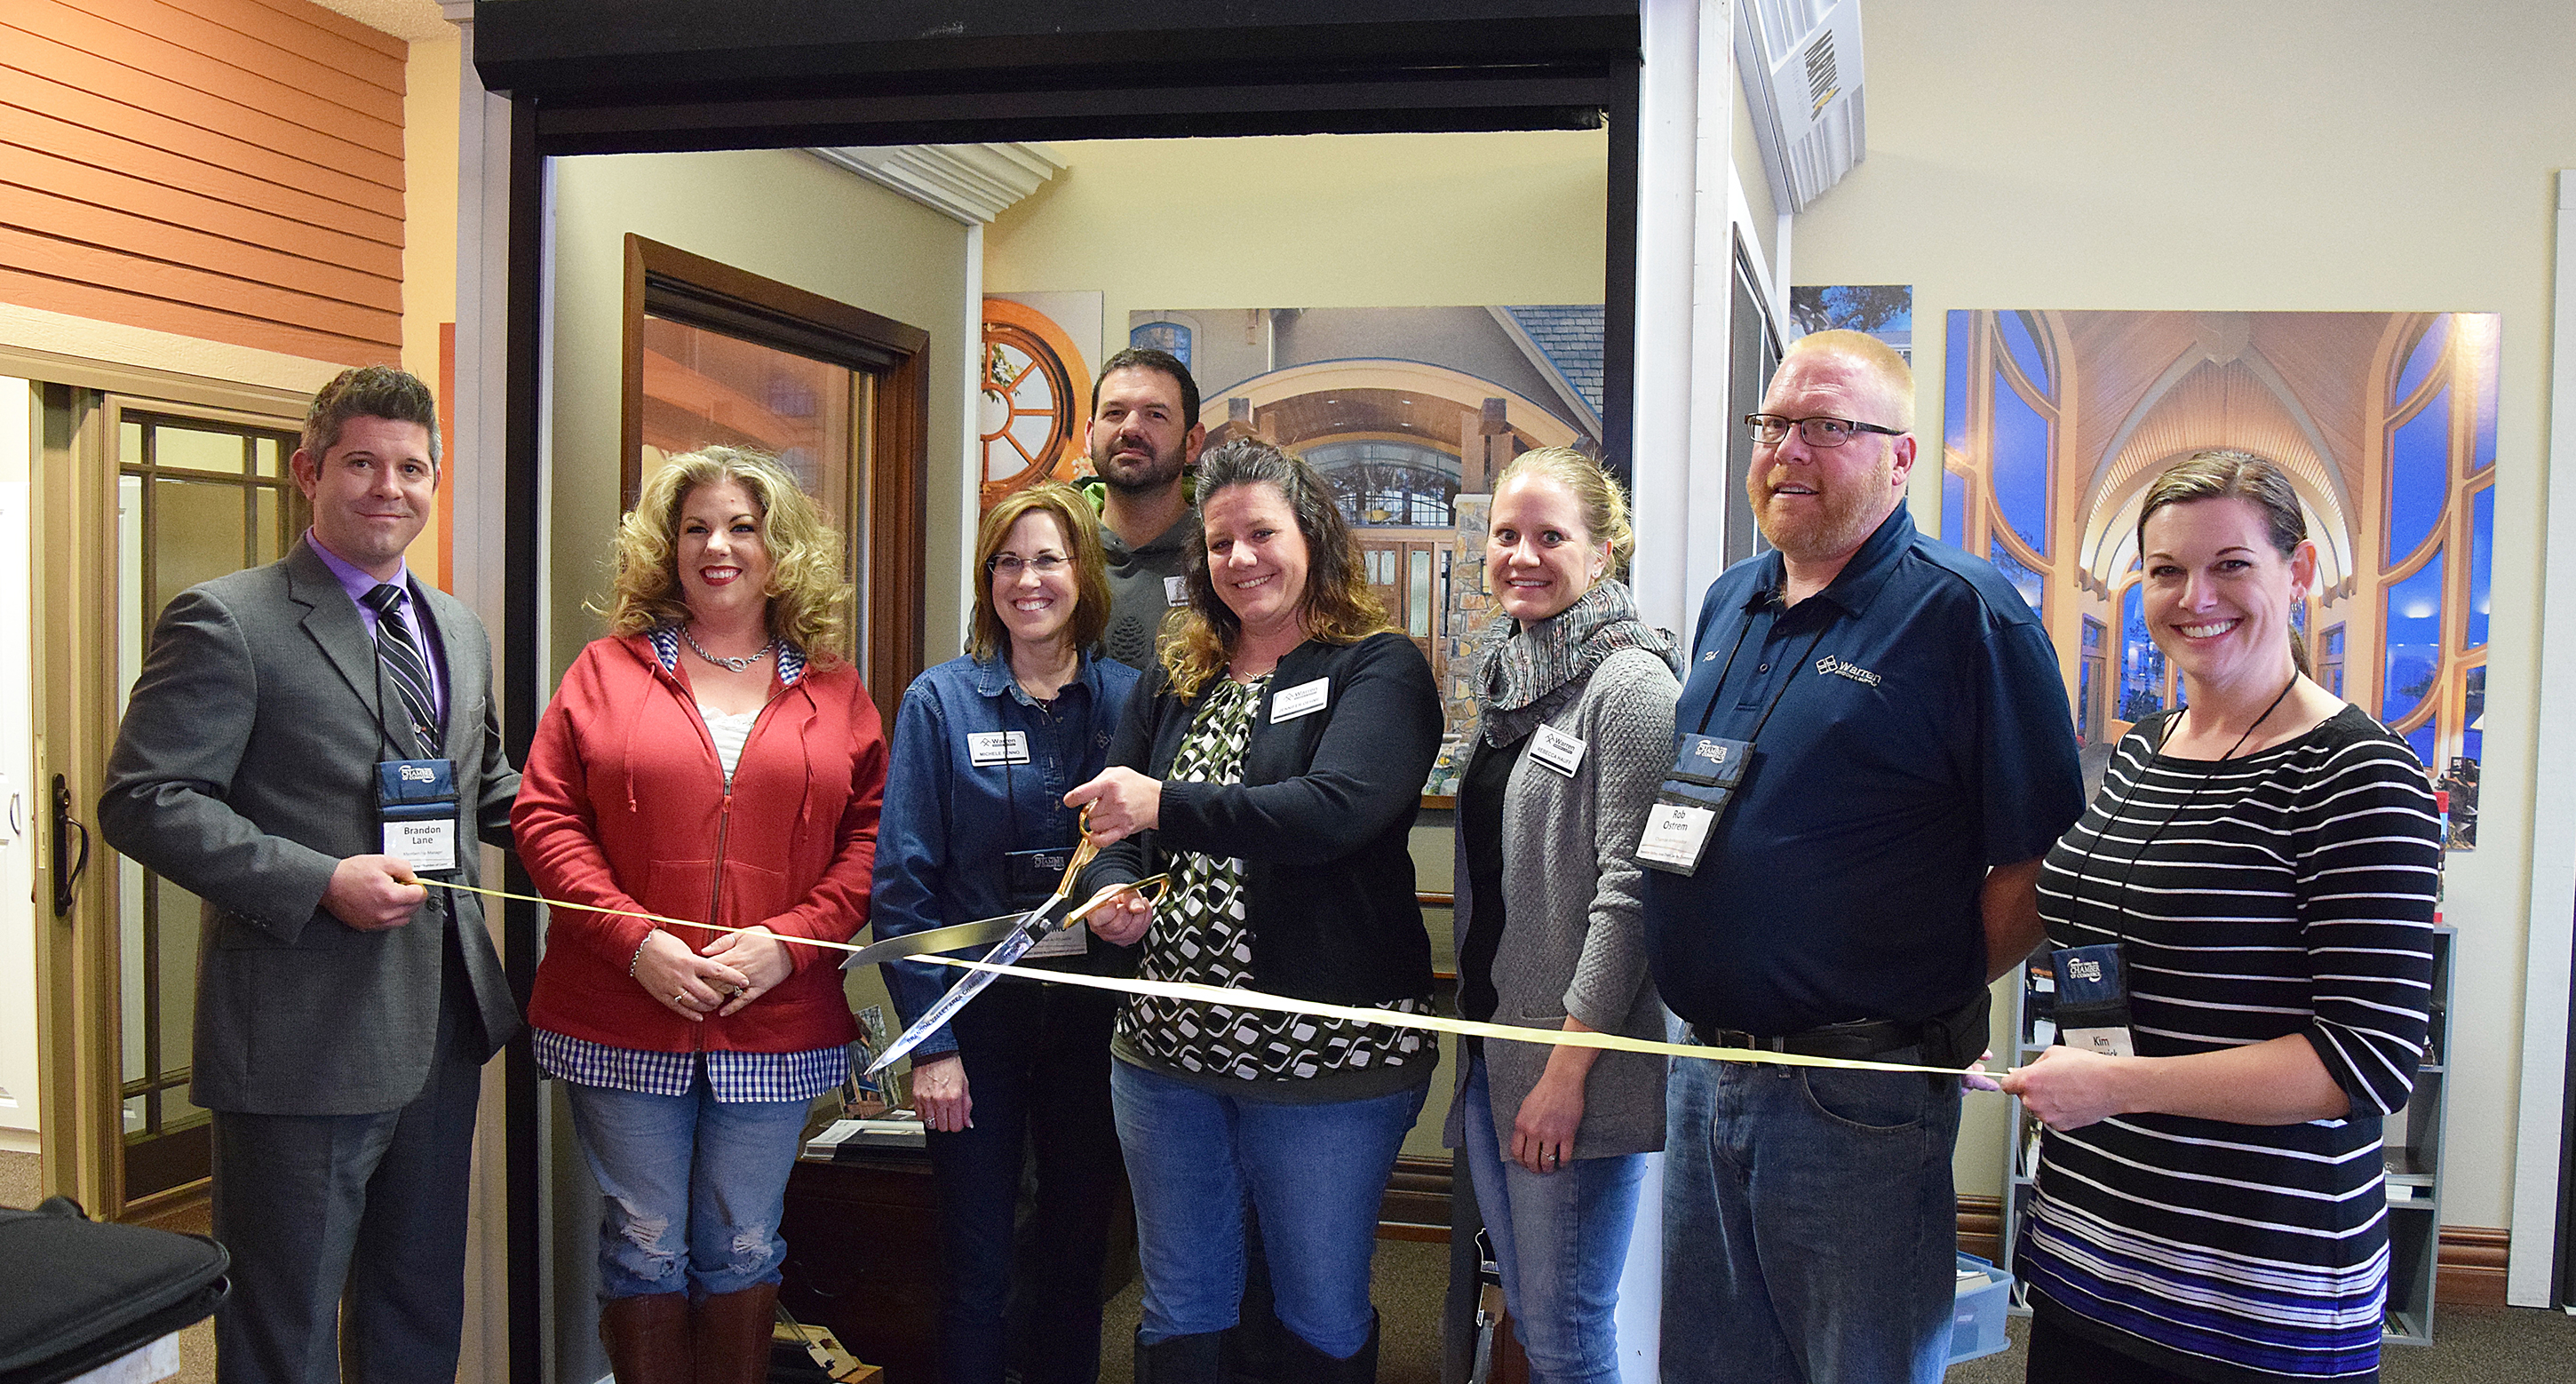 */The Brandon Valley Area Chamber of Commerce welcomed Warren Window & Supply as a new member at a ribbon cutting and mixer Jan. 25 at the business's Sioux Falls location, 7501 E. Arrowhead Pky. Pictured <i>(from left)</i> are BVACC membership manager Brandon Lane, Aubrey LaVigne, Michelle Fenno, Justin Hager, Jennier Oehme, Rebecca Hauff, Rob Ostrem and Kim Cerwick, CEO/president of the BVACC. <strong>Jill Meier/BV Journal</strong>